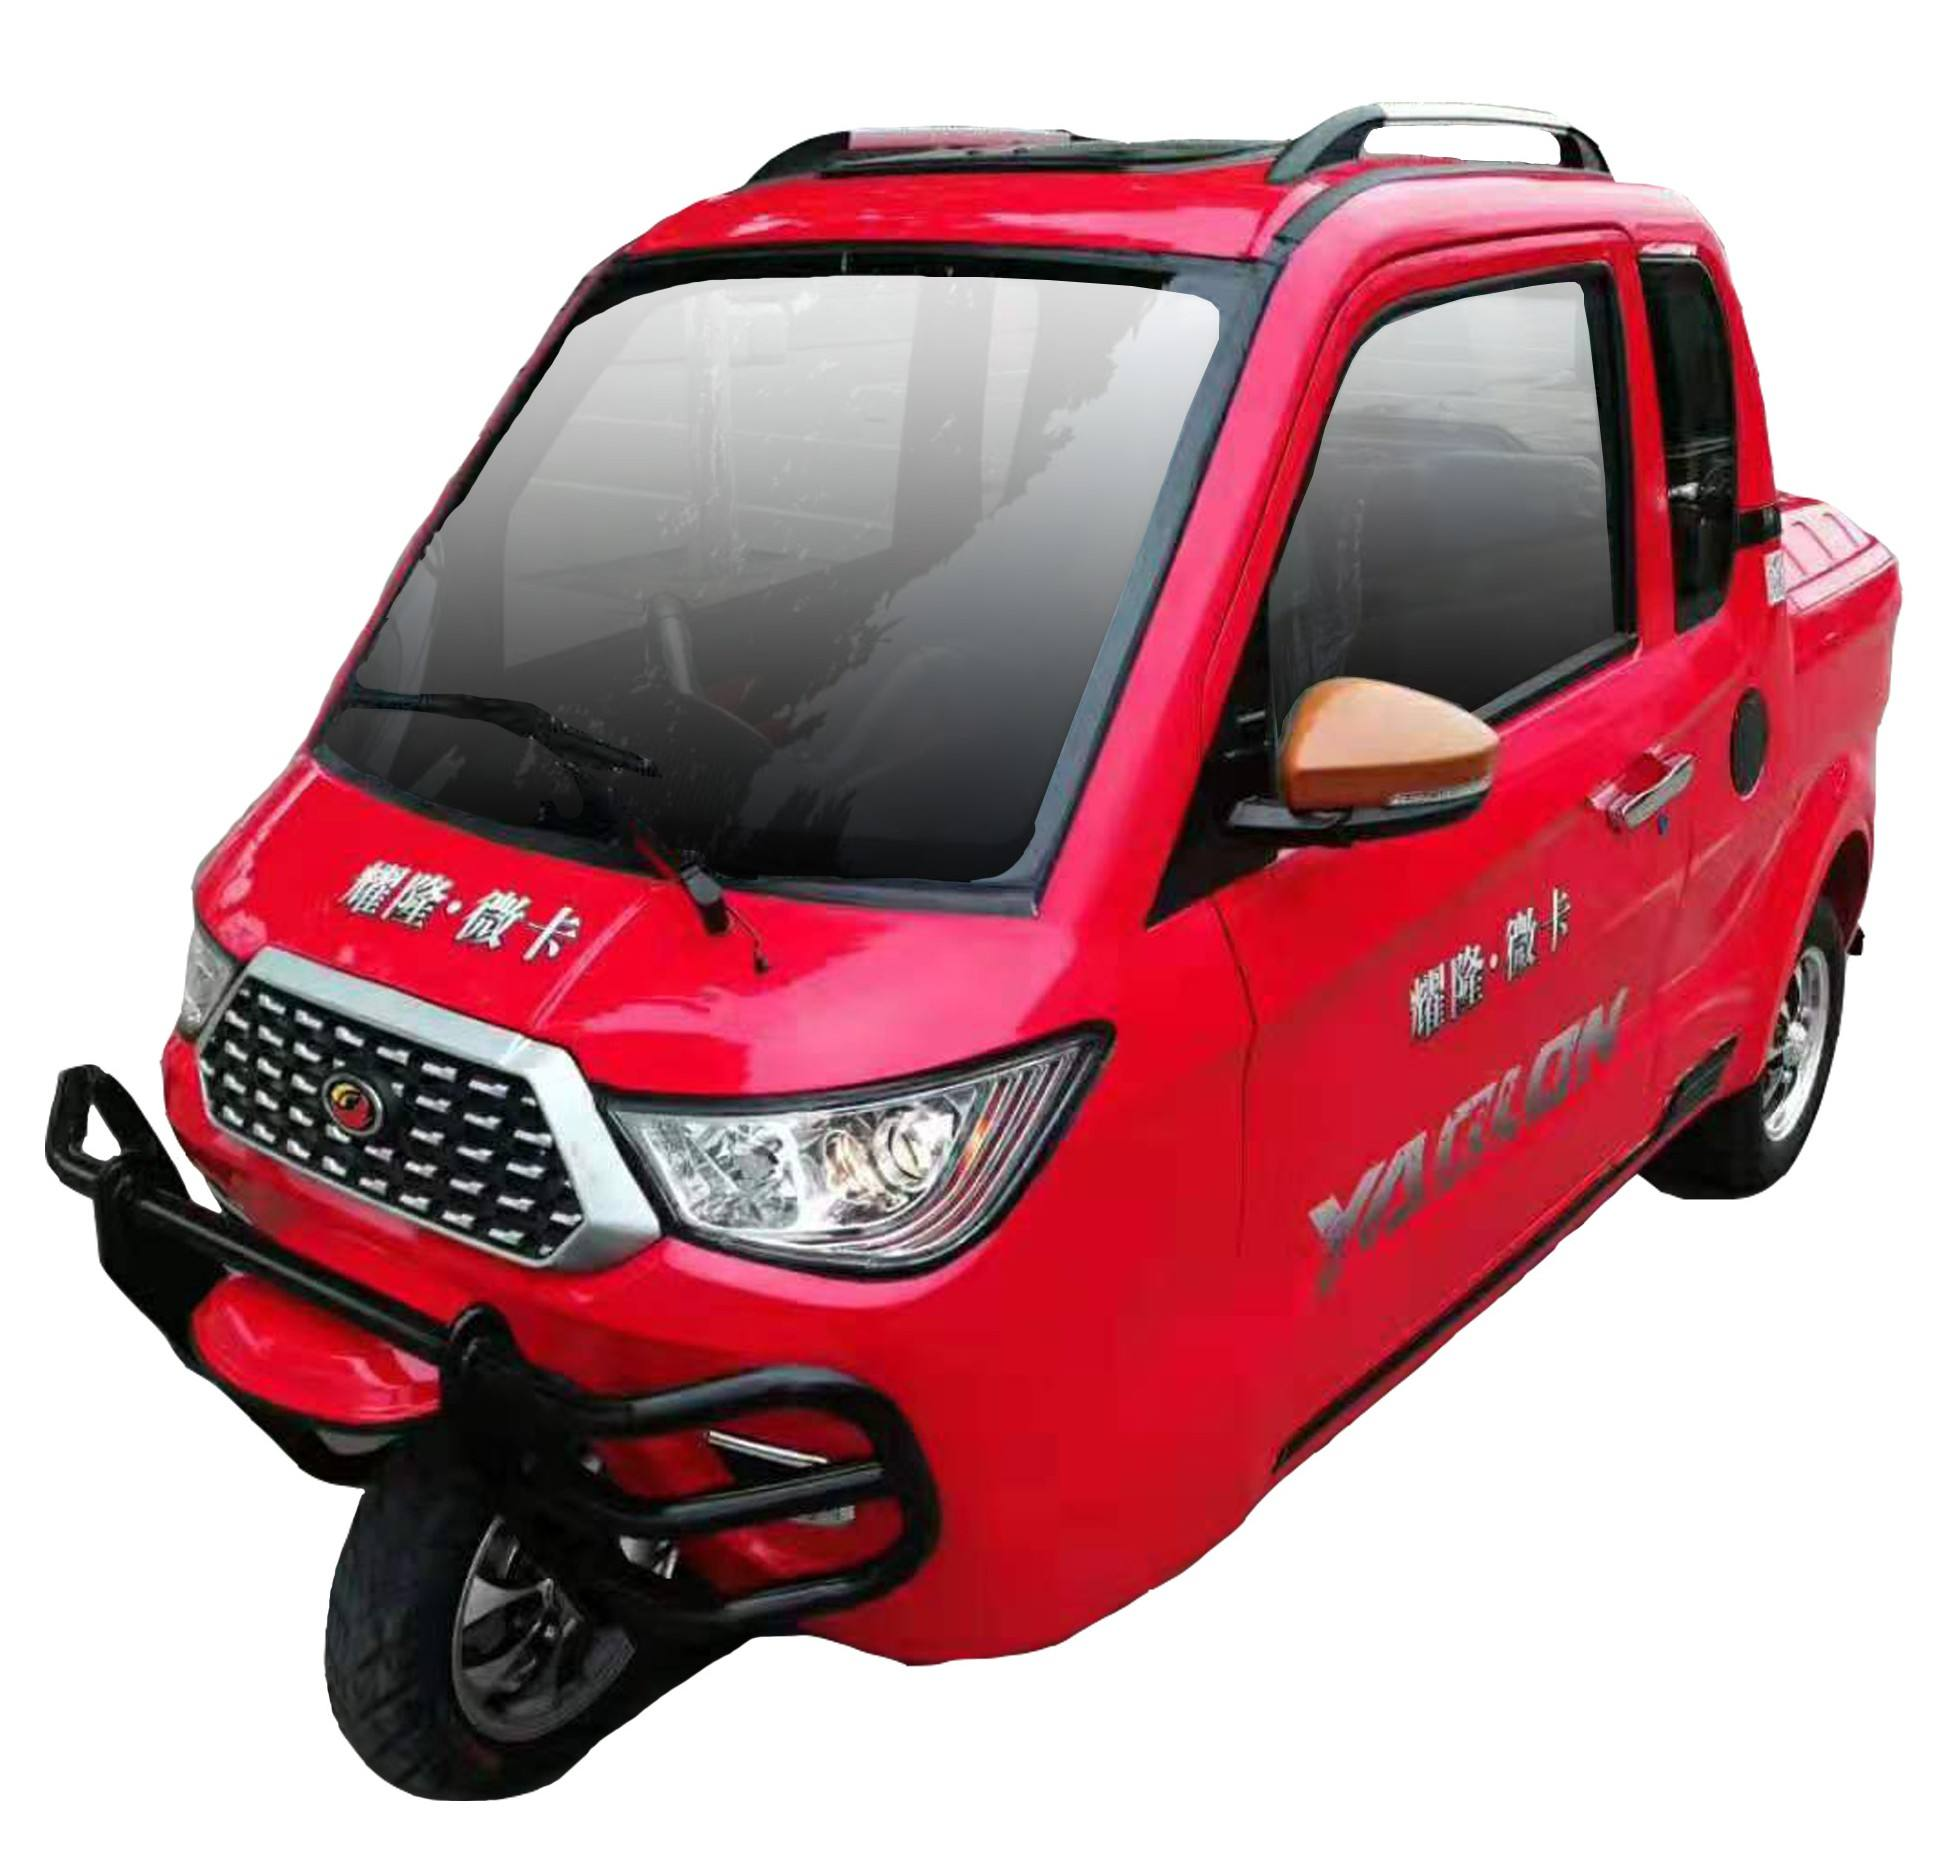 China YAOLON brand new design cargo passenger loader Pickup truck three wheel enclosed gasoline tricycle